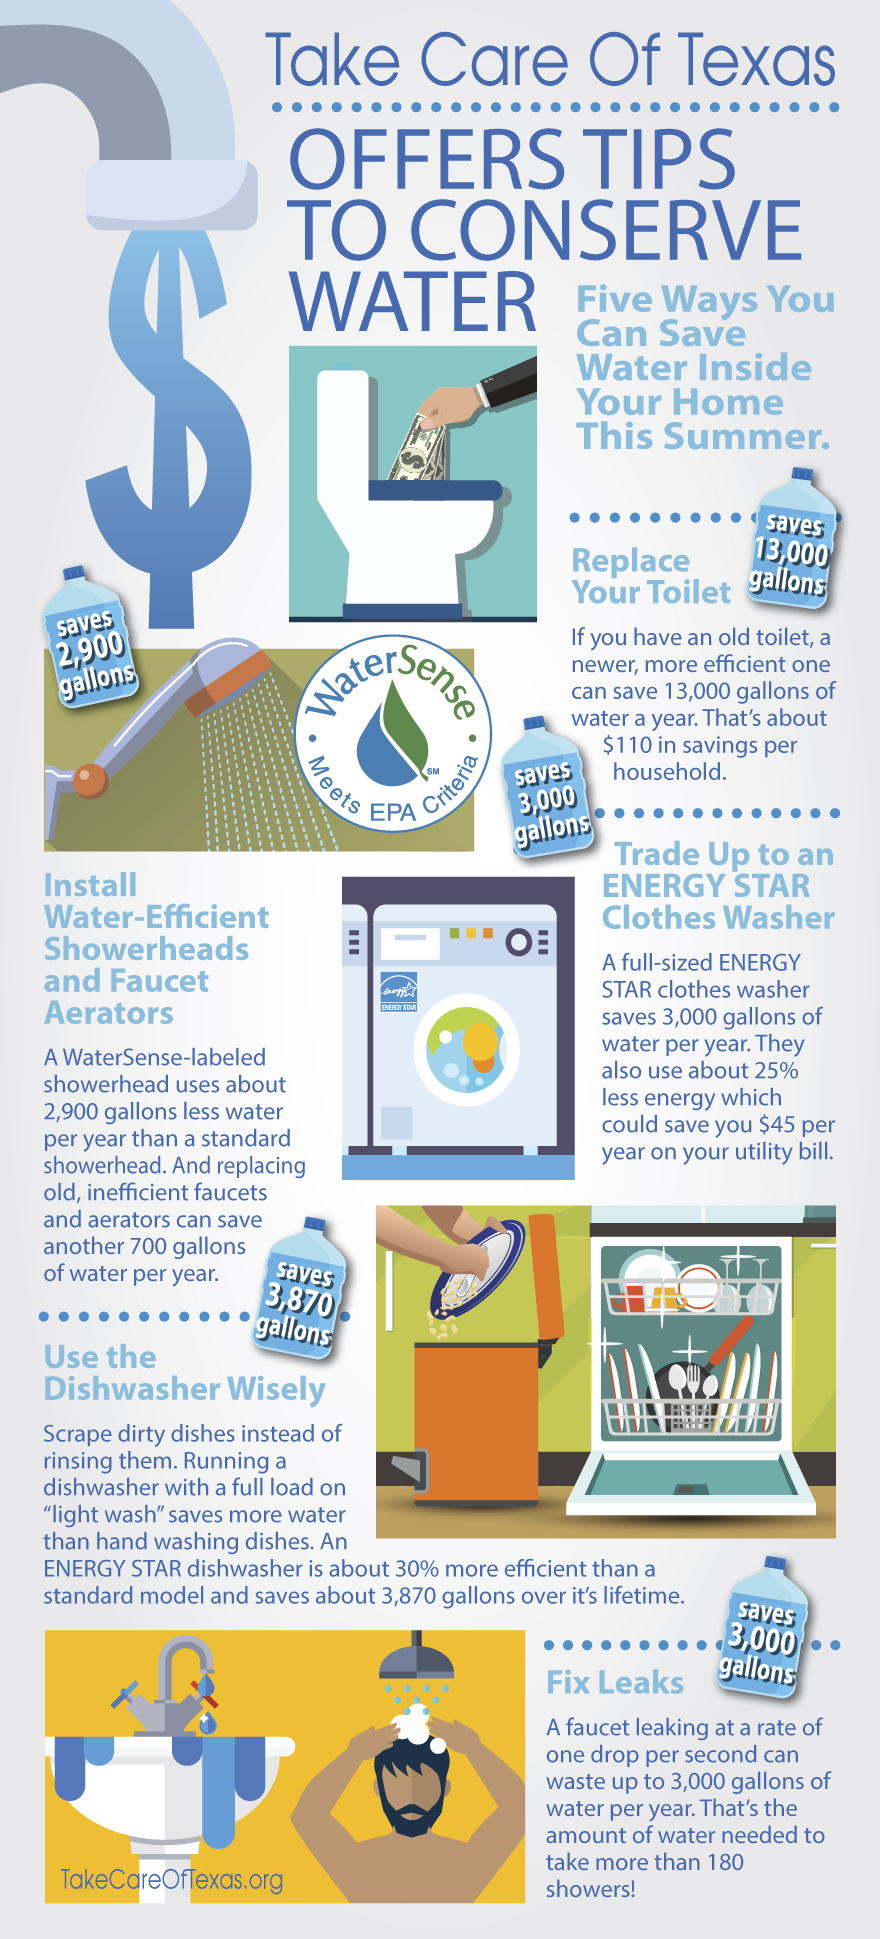 Take Care of Texas offers tips to conserve water.